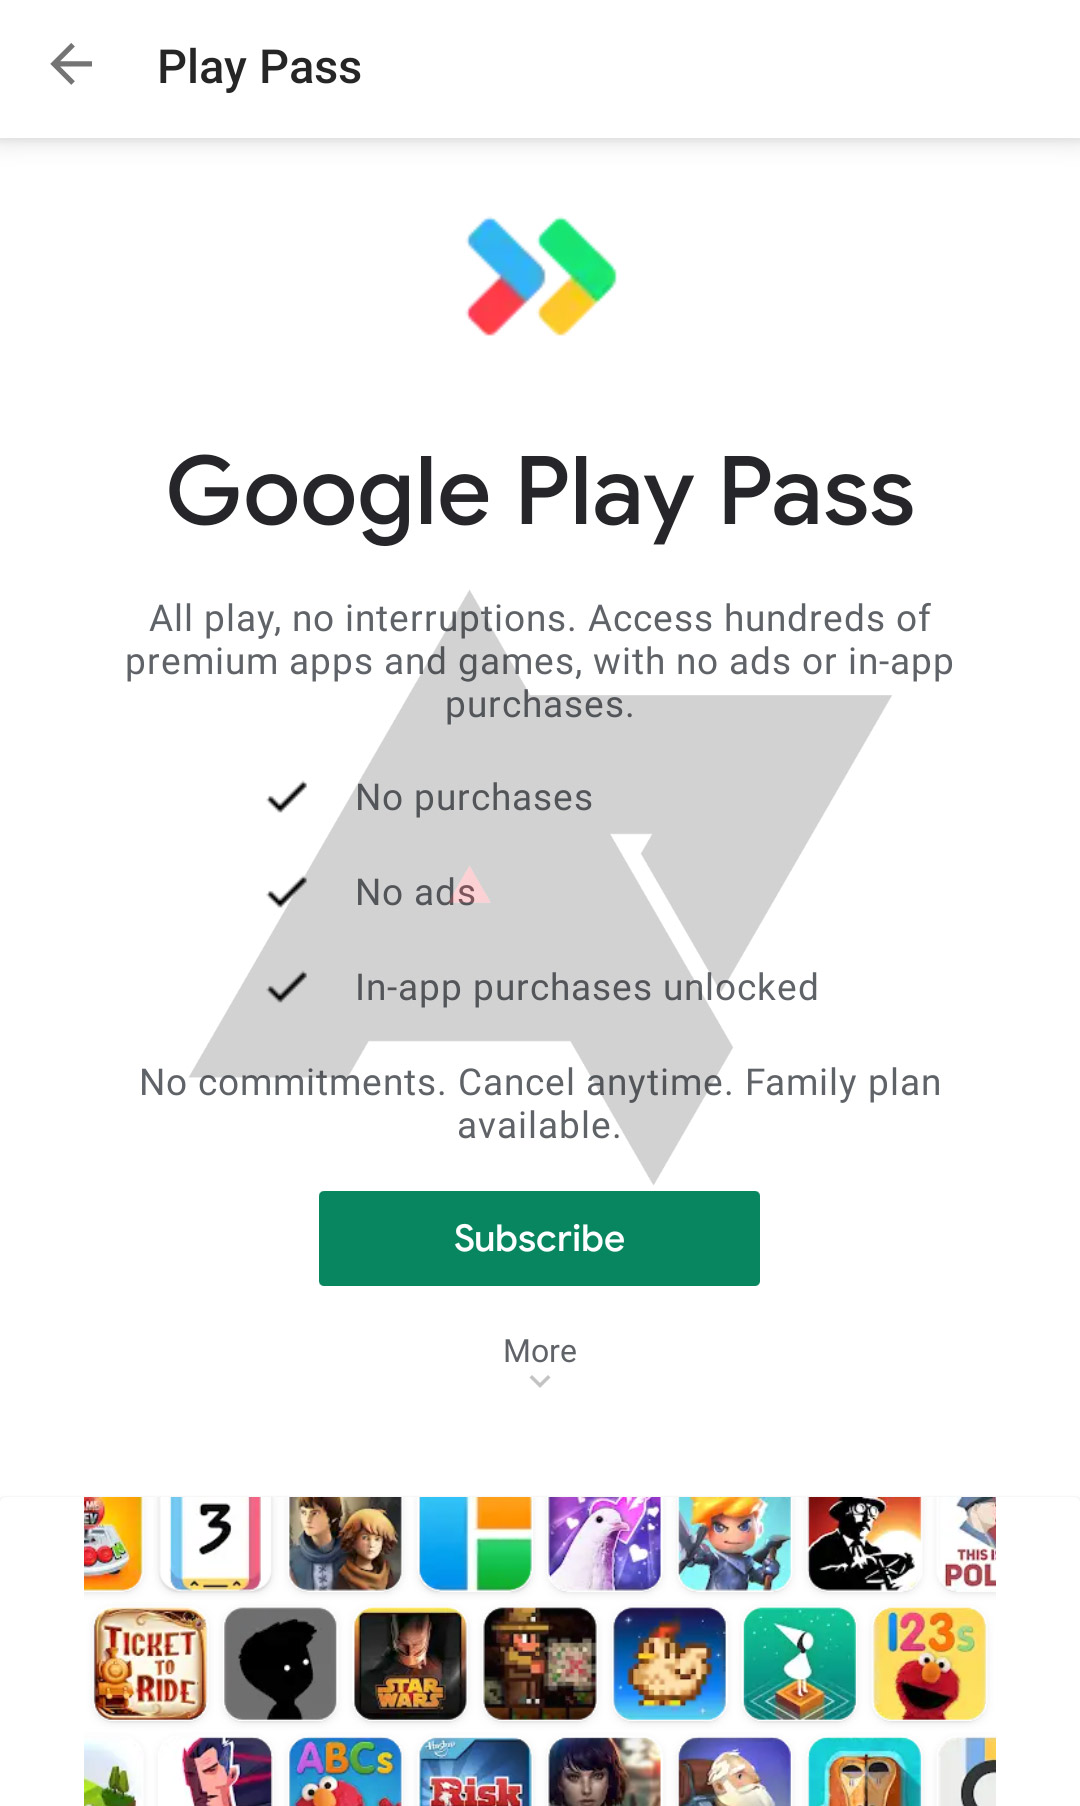 Google Play Pass 即将推出